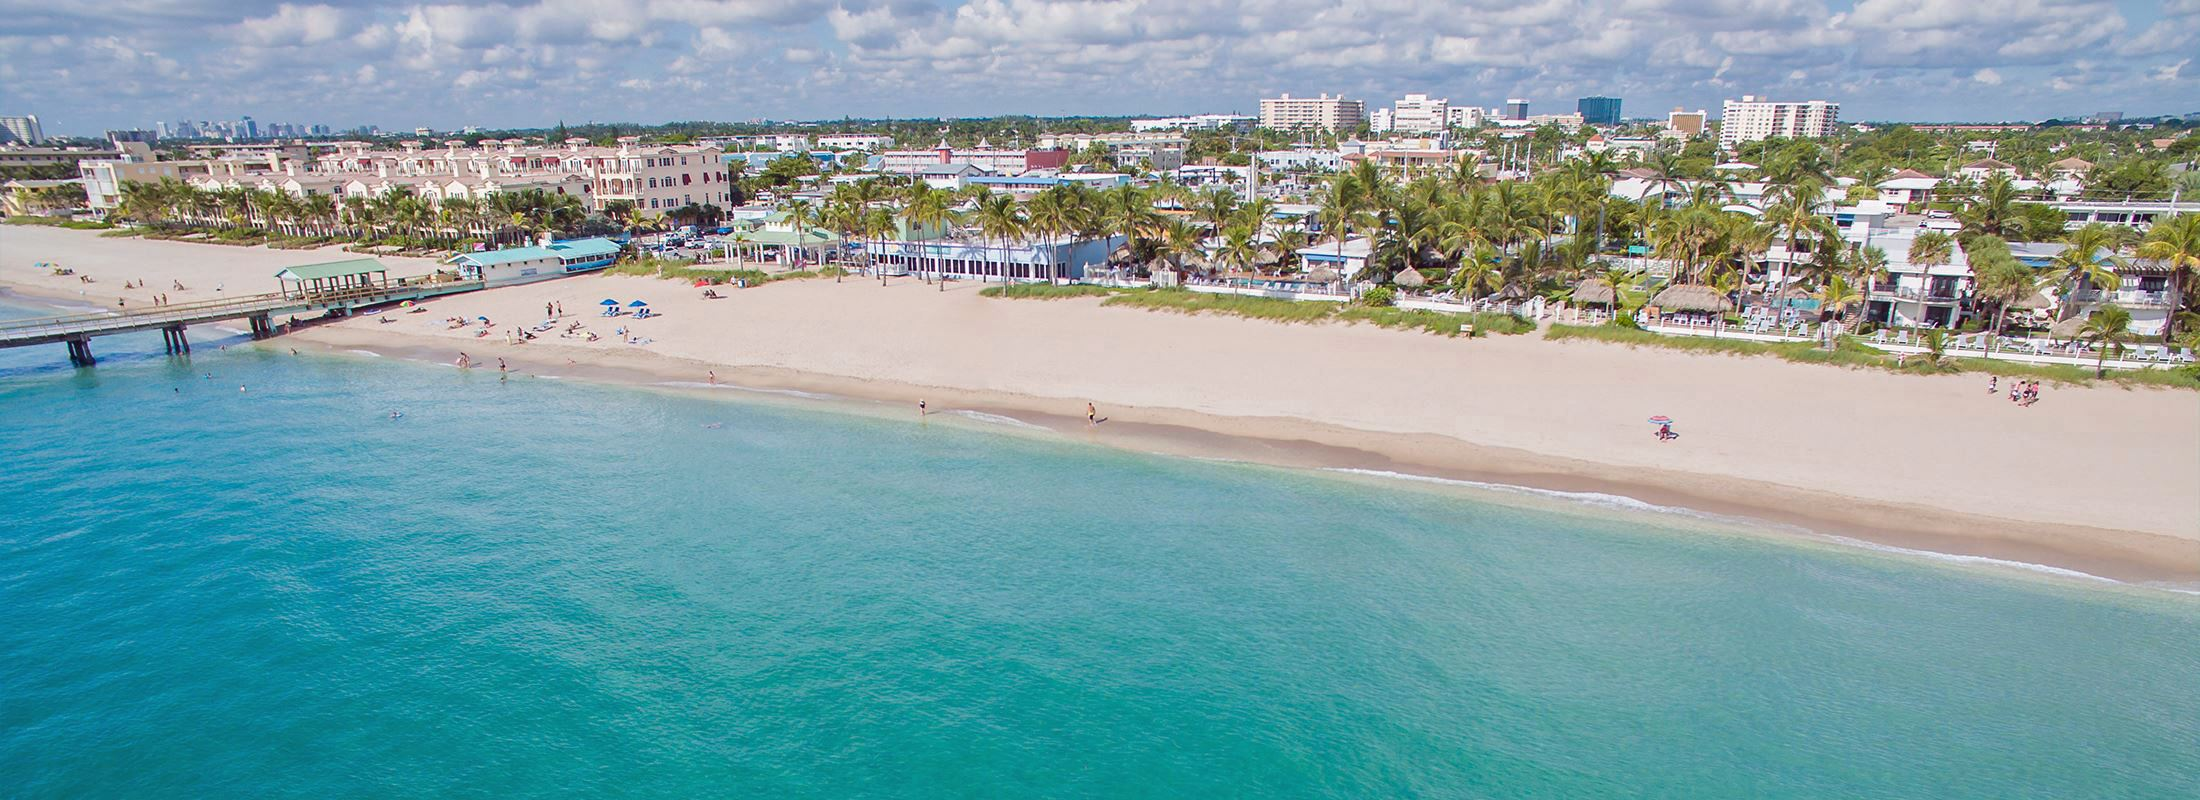 Lauderdale-By-The-Sea Aerial View of Beach and Anglins Pier